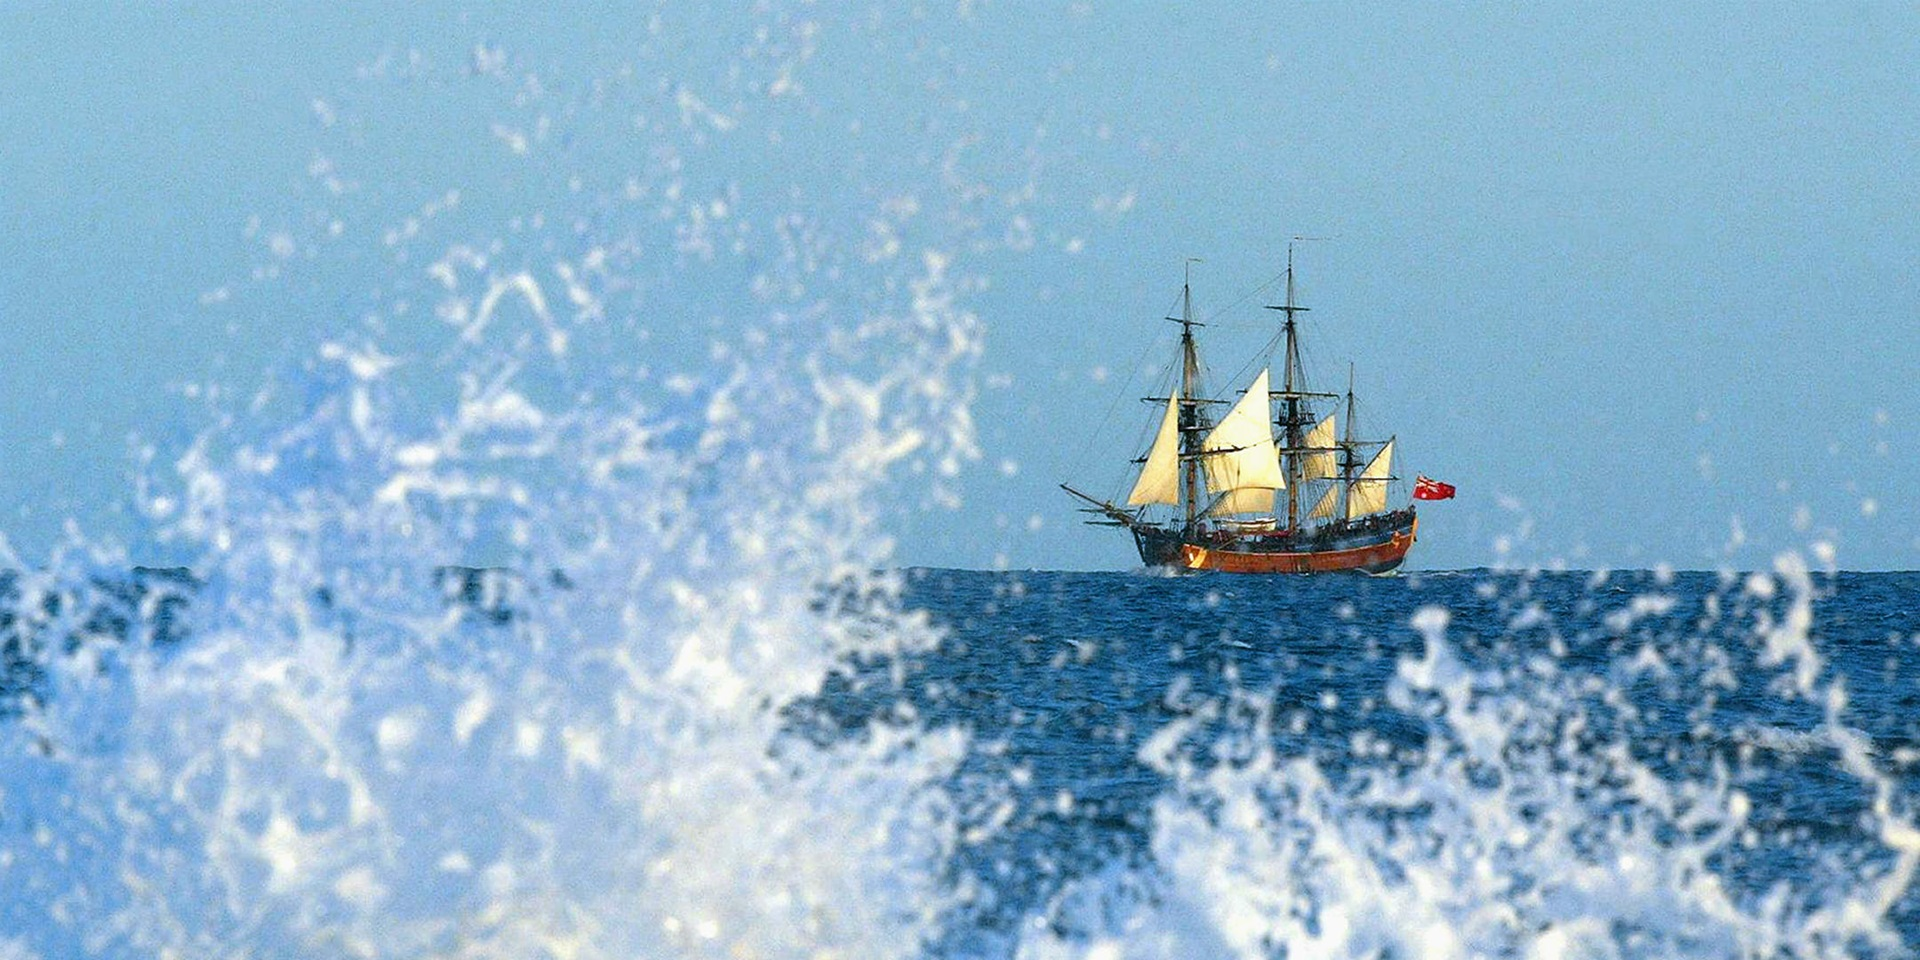 HMB Endeavour at sea